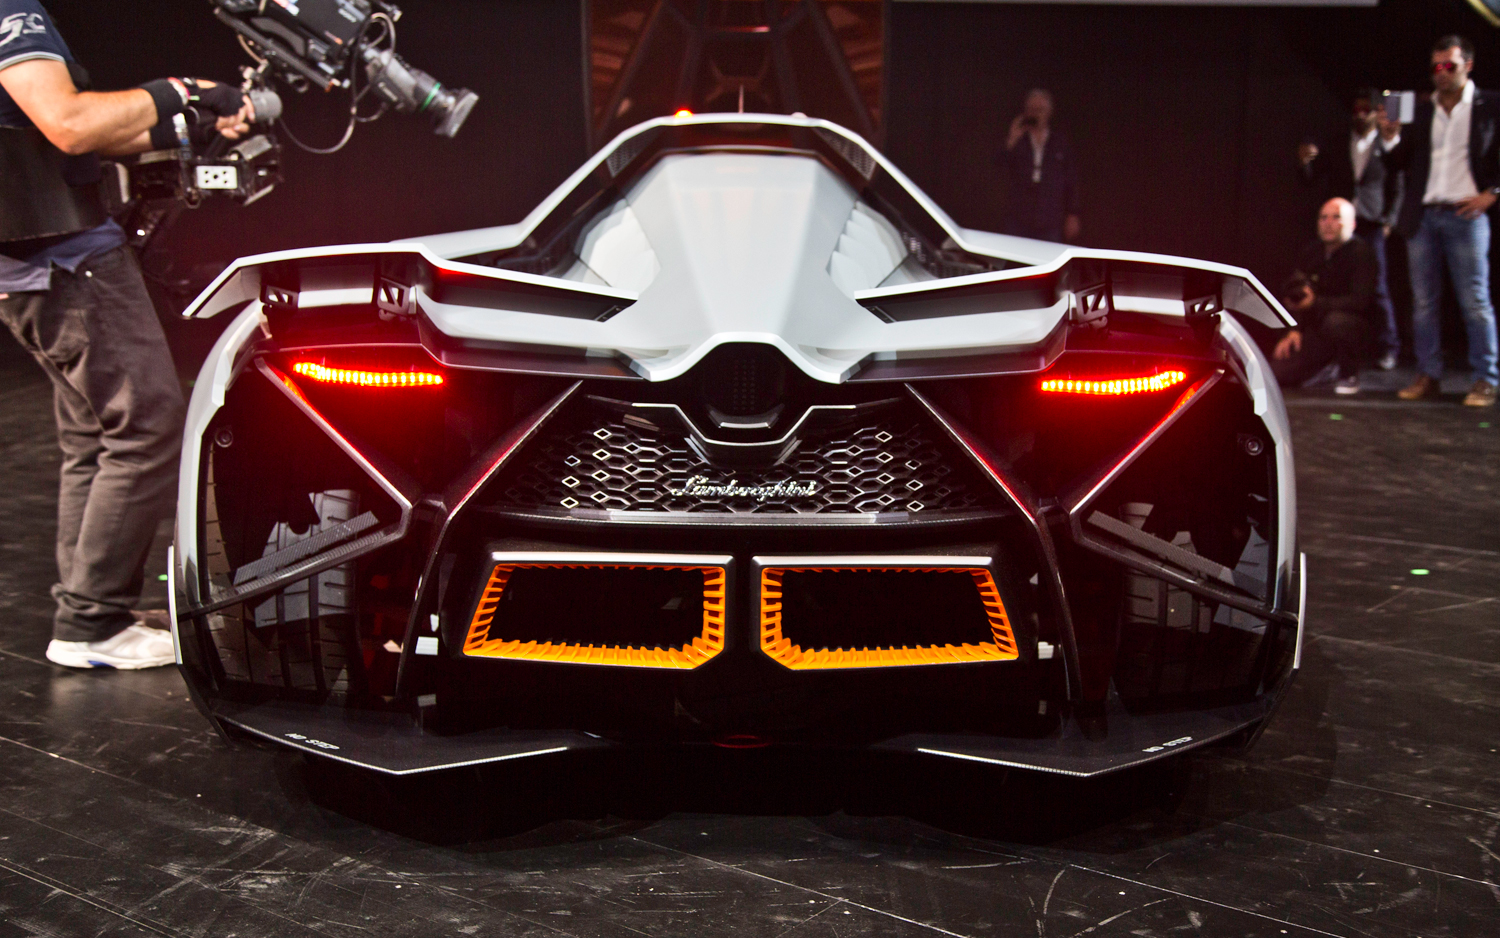 new lamborghini egoista hd wallpapers 2013 all about hd wallpapers. Black Bedroom Furniture Sets. Home Design Ideas